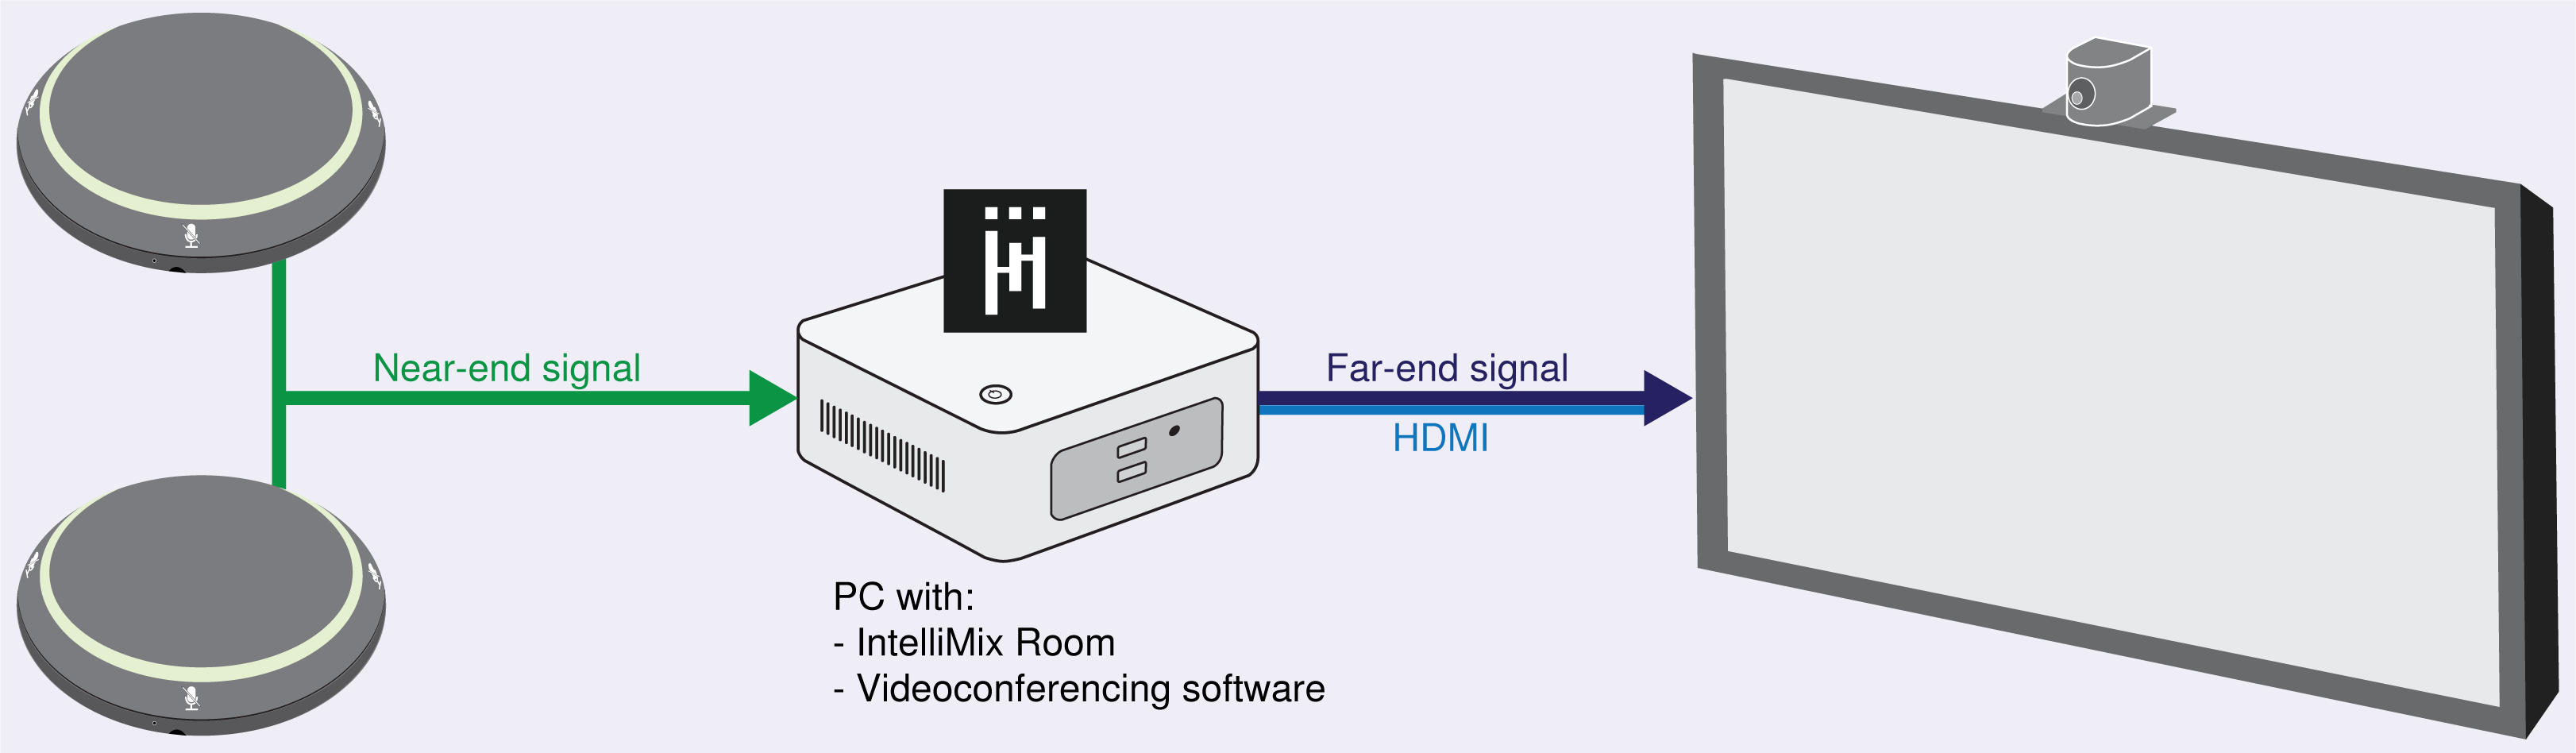 Connection diagram showing 2 MXA310s, computer with IntelliMix Room, and a display with a camera mounted on top.